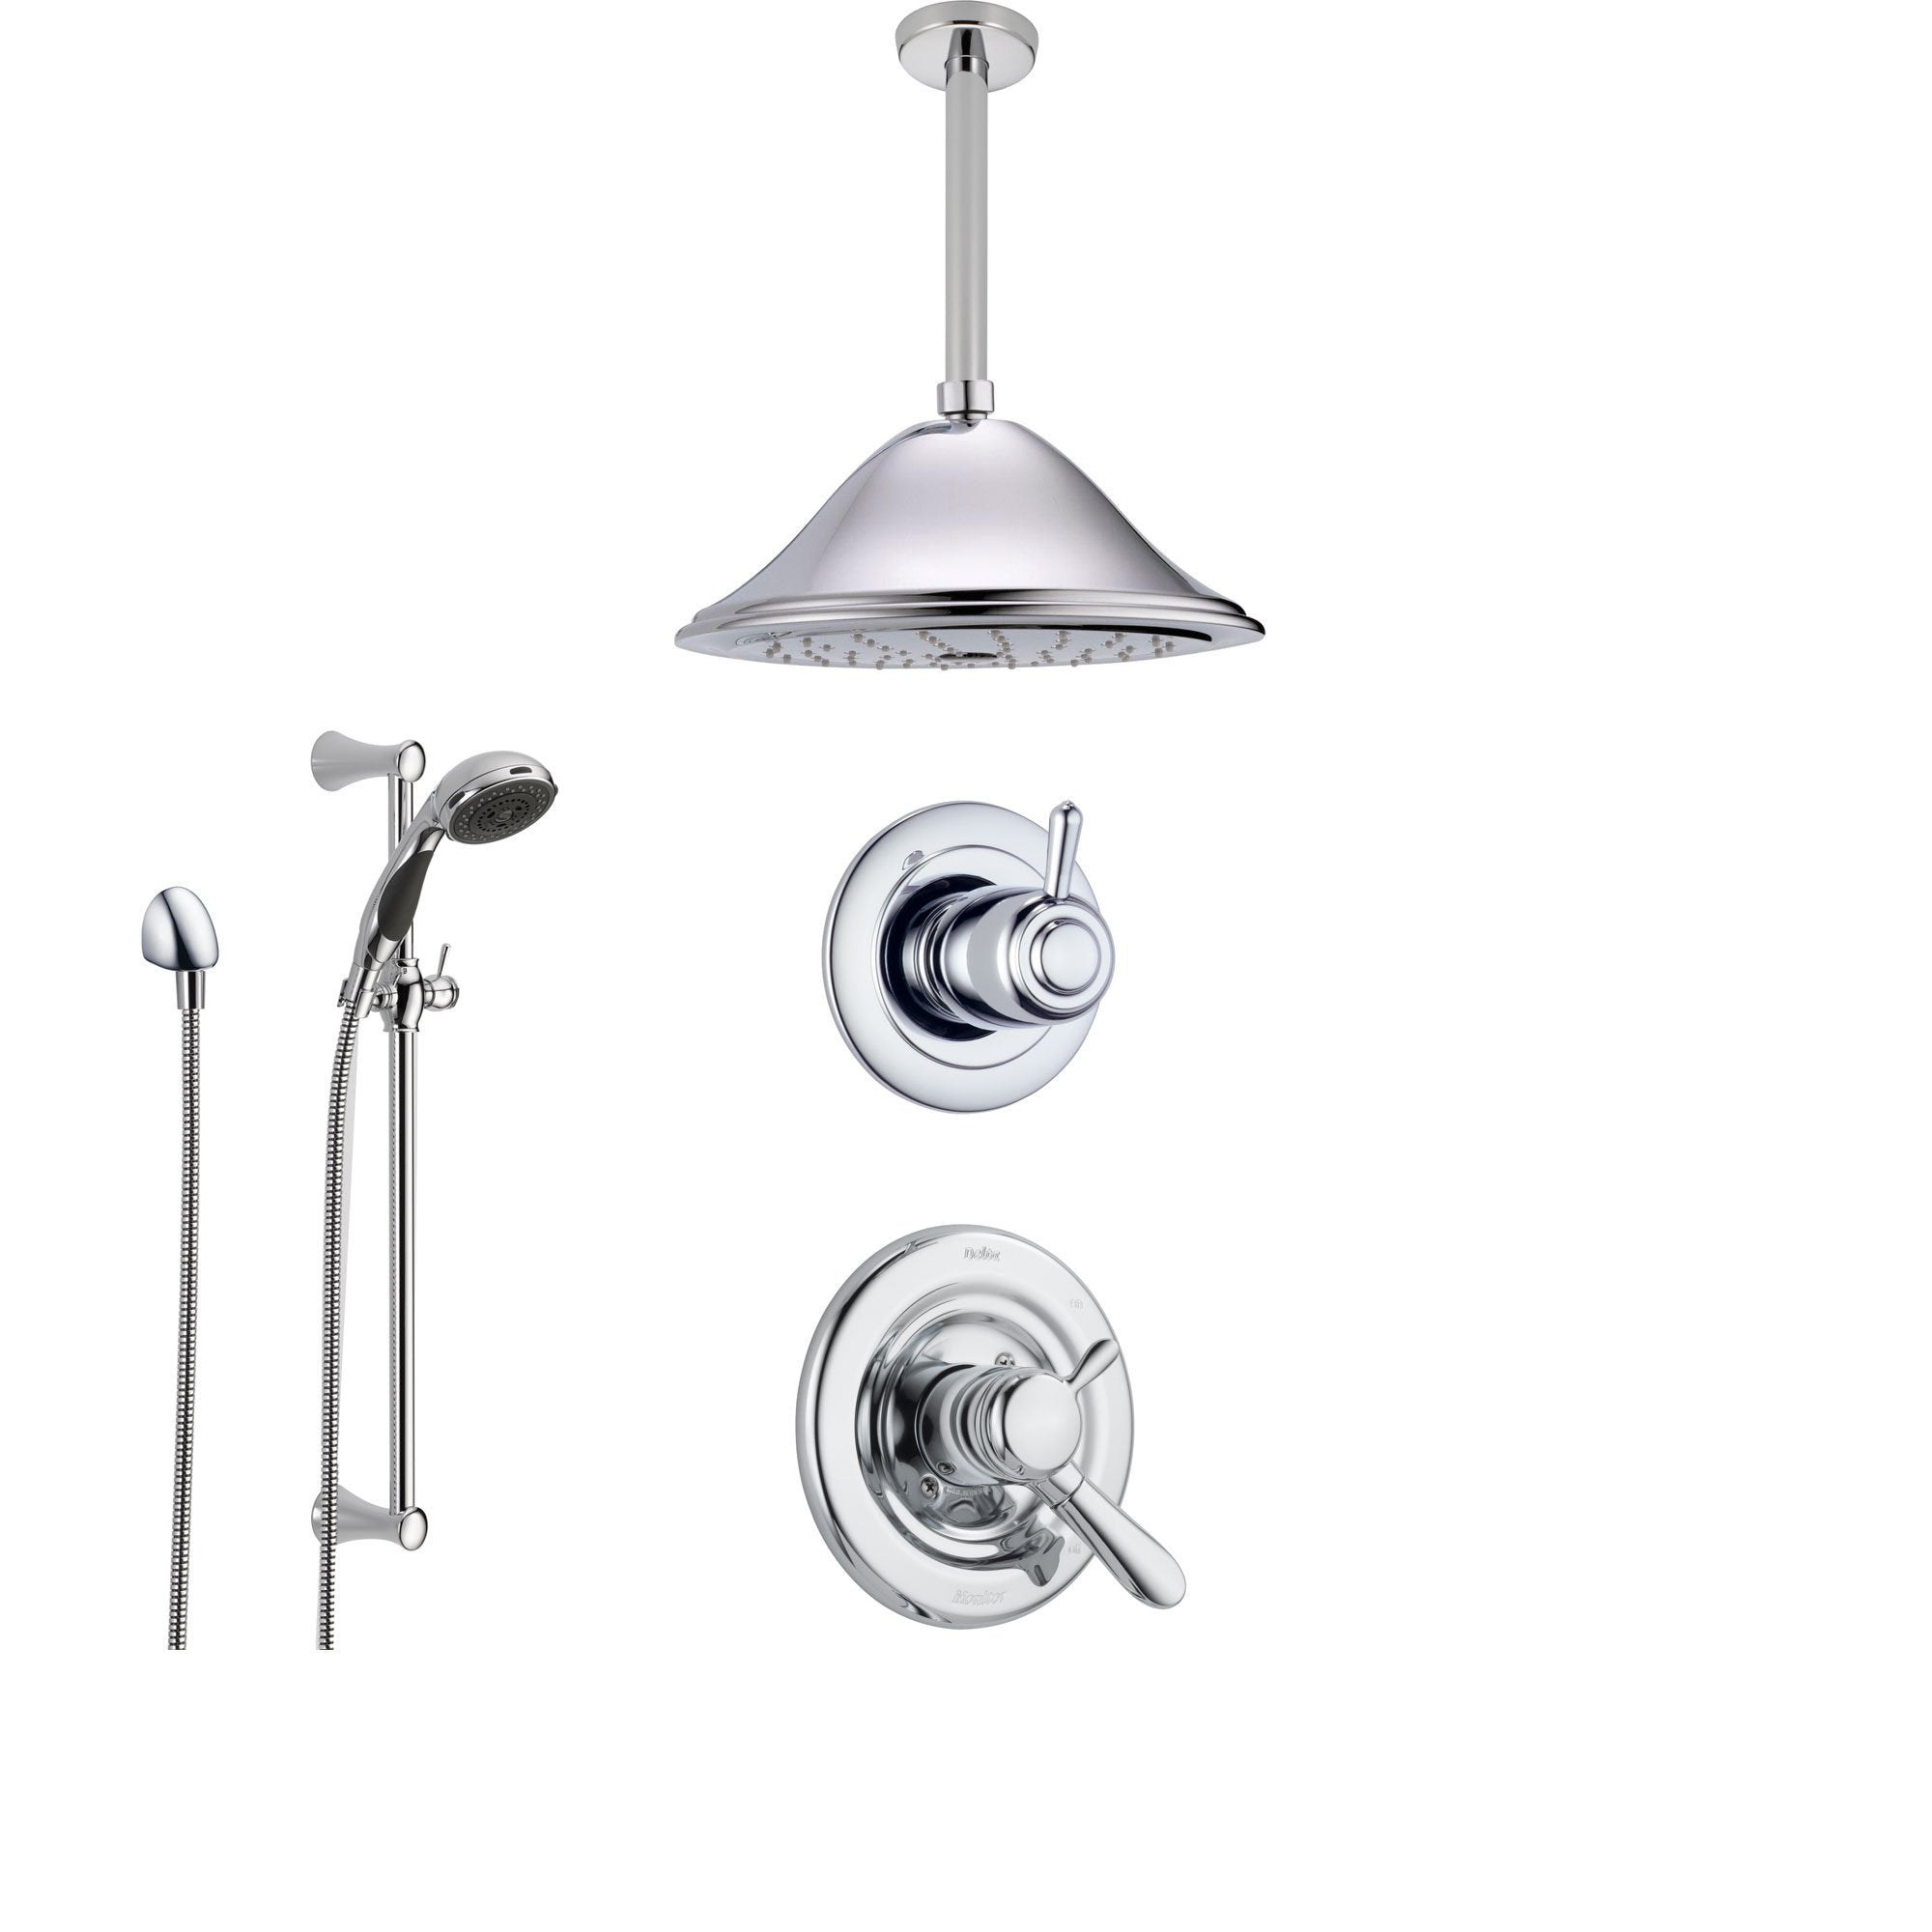 Delta Lahara Chrome Shower System with Dual Control Shower Handle, 3-setting Diverter, Large Ceiling Mount Rain Showerhead, and Handheld Shower SS173882